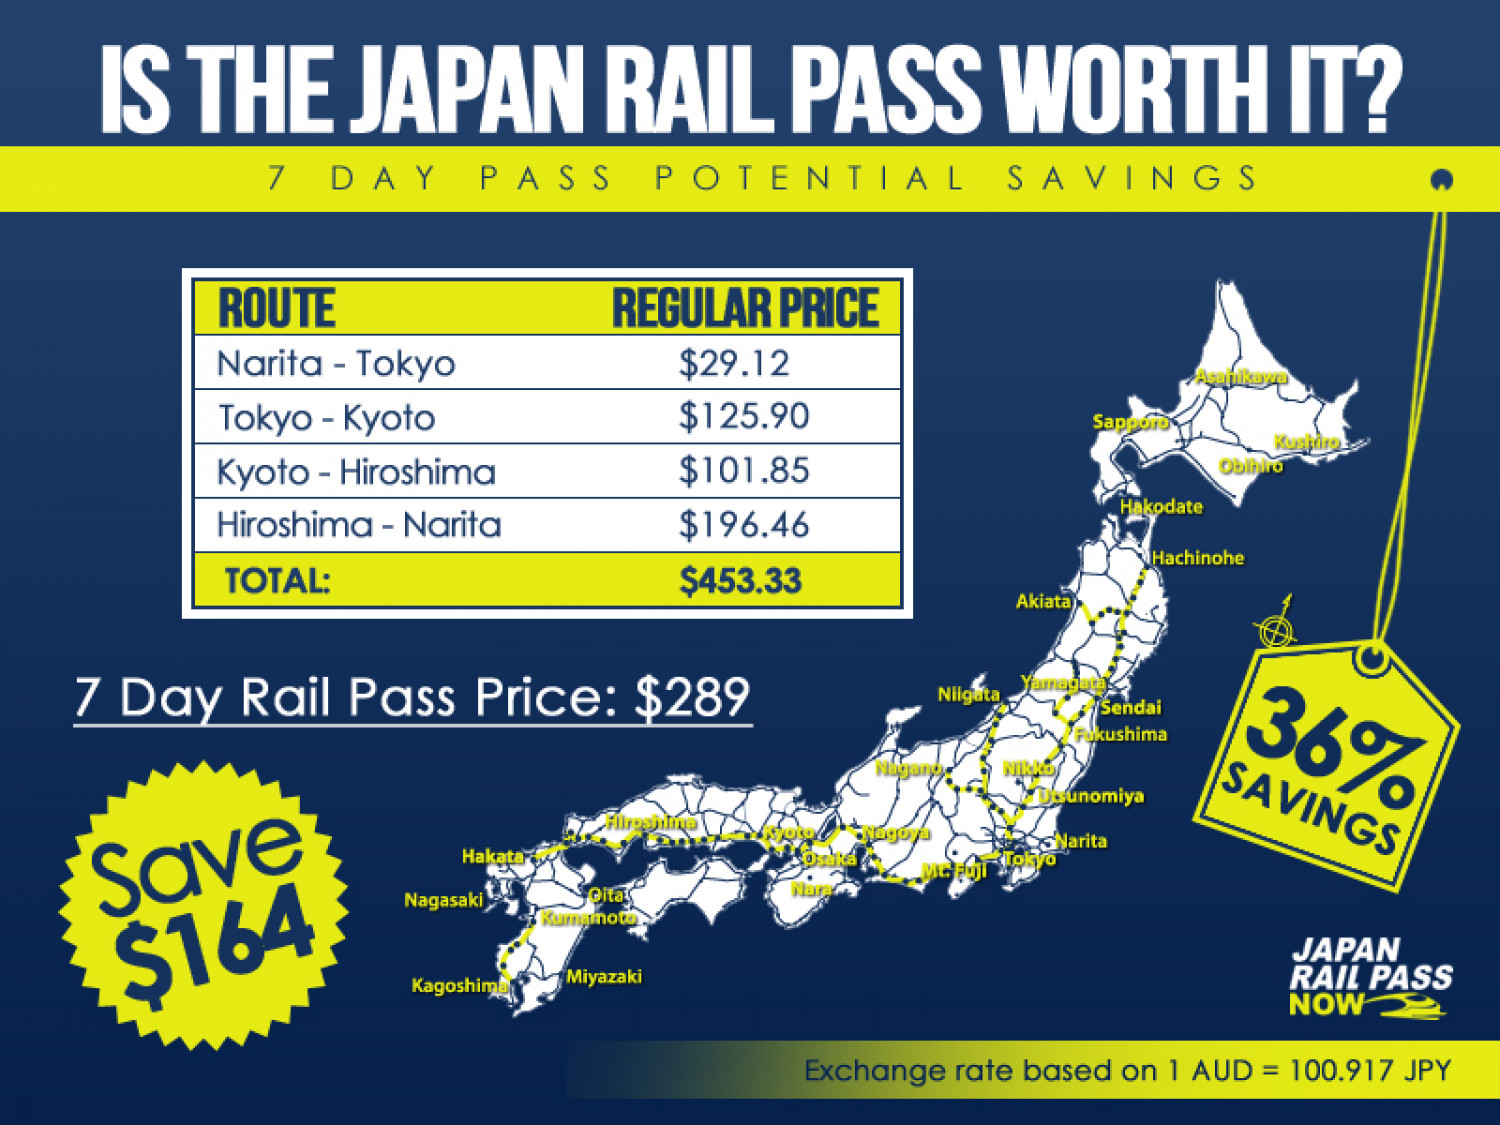 Is The Japan Rail Pass Worth It Infographic